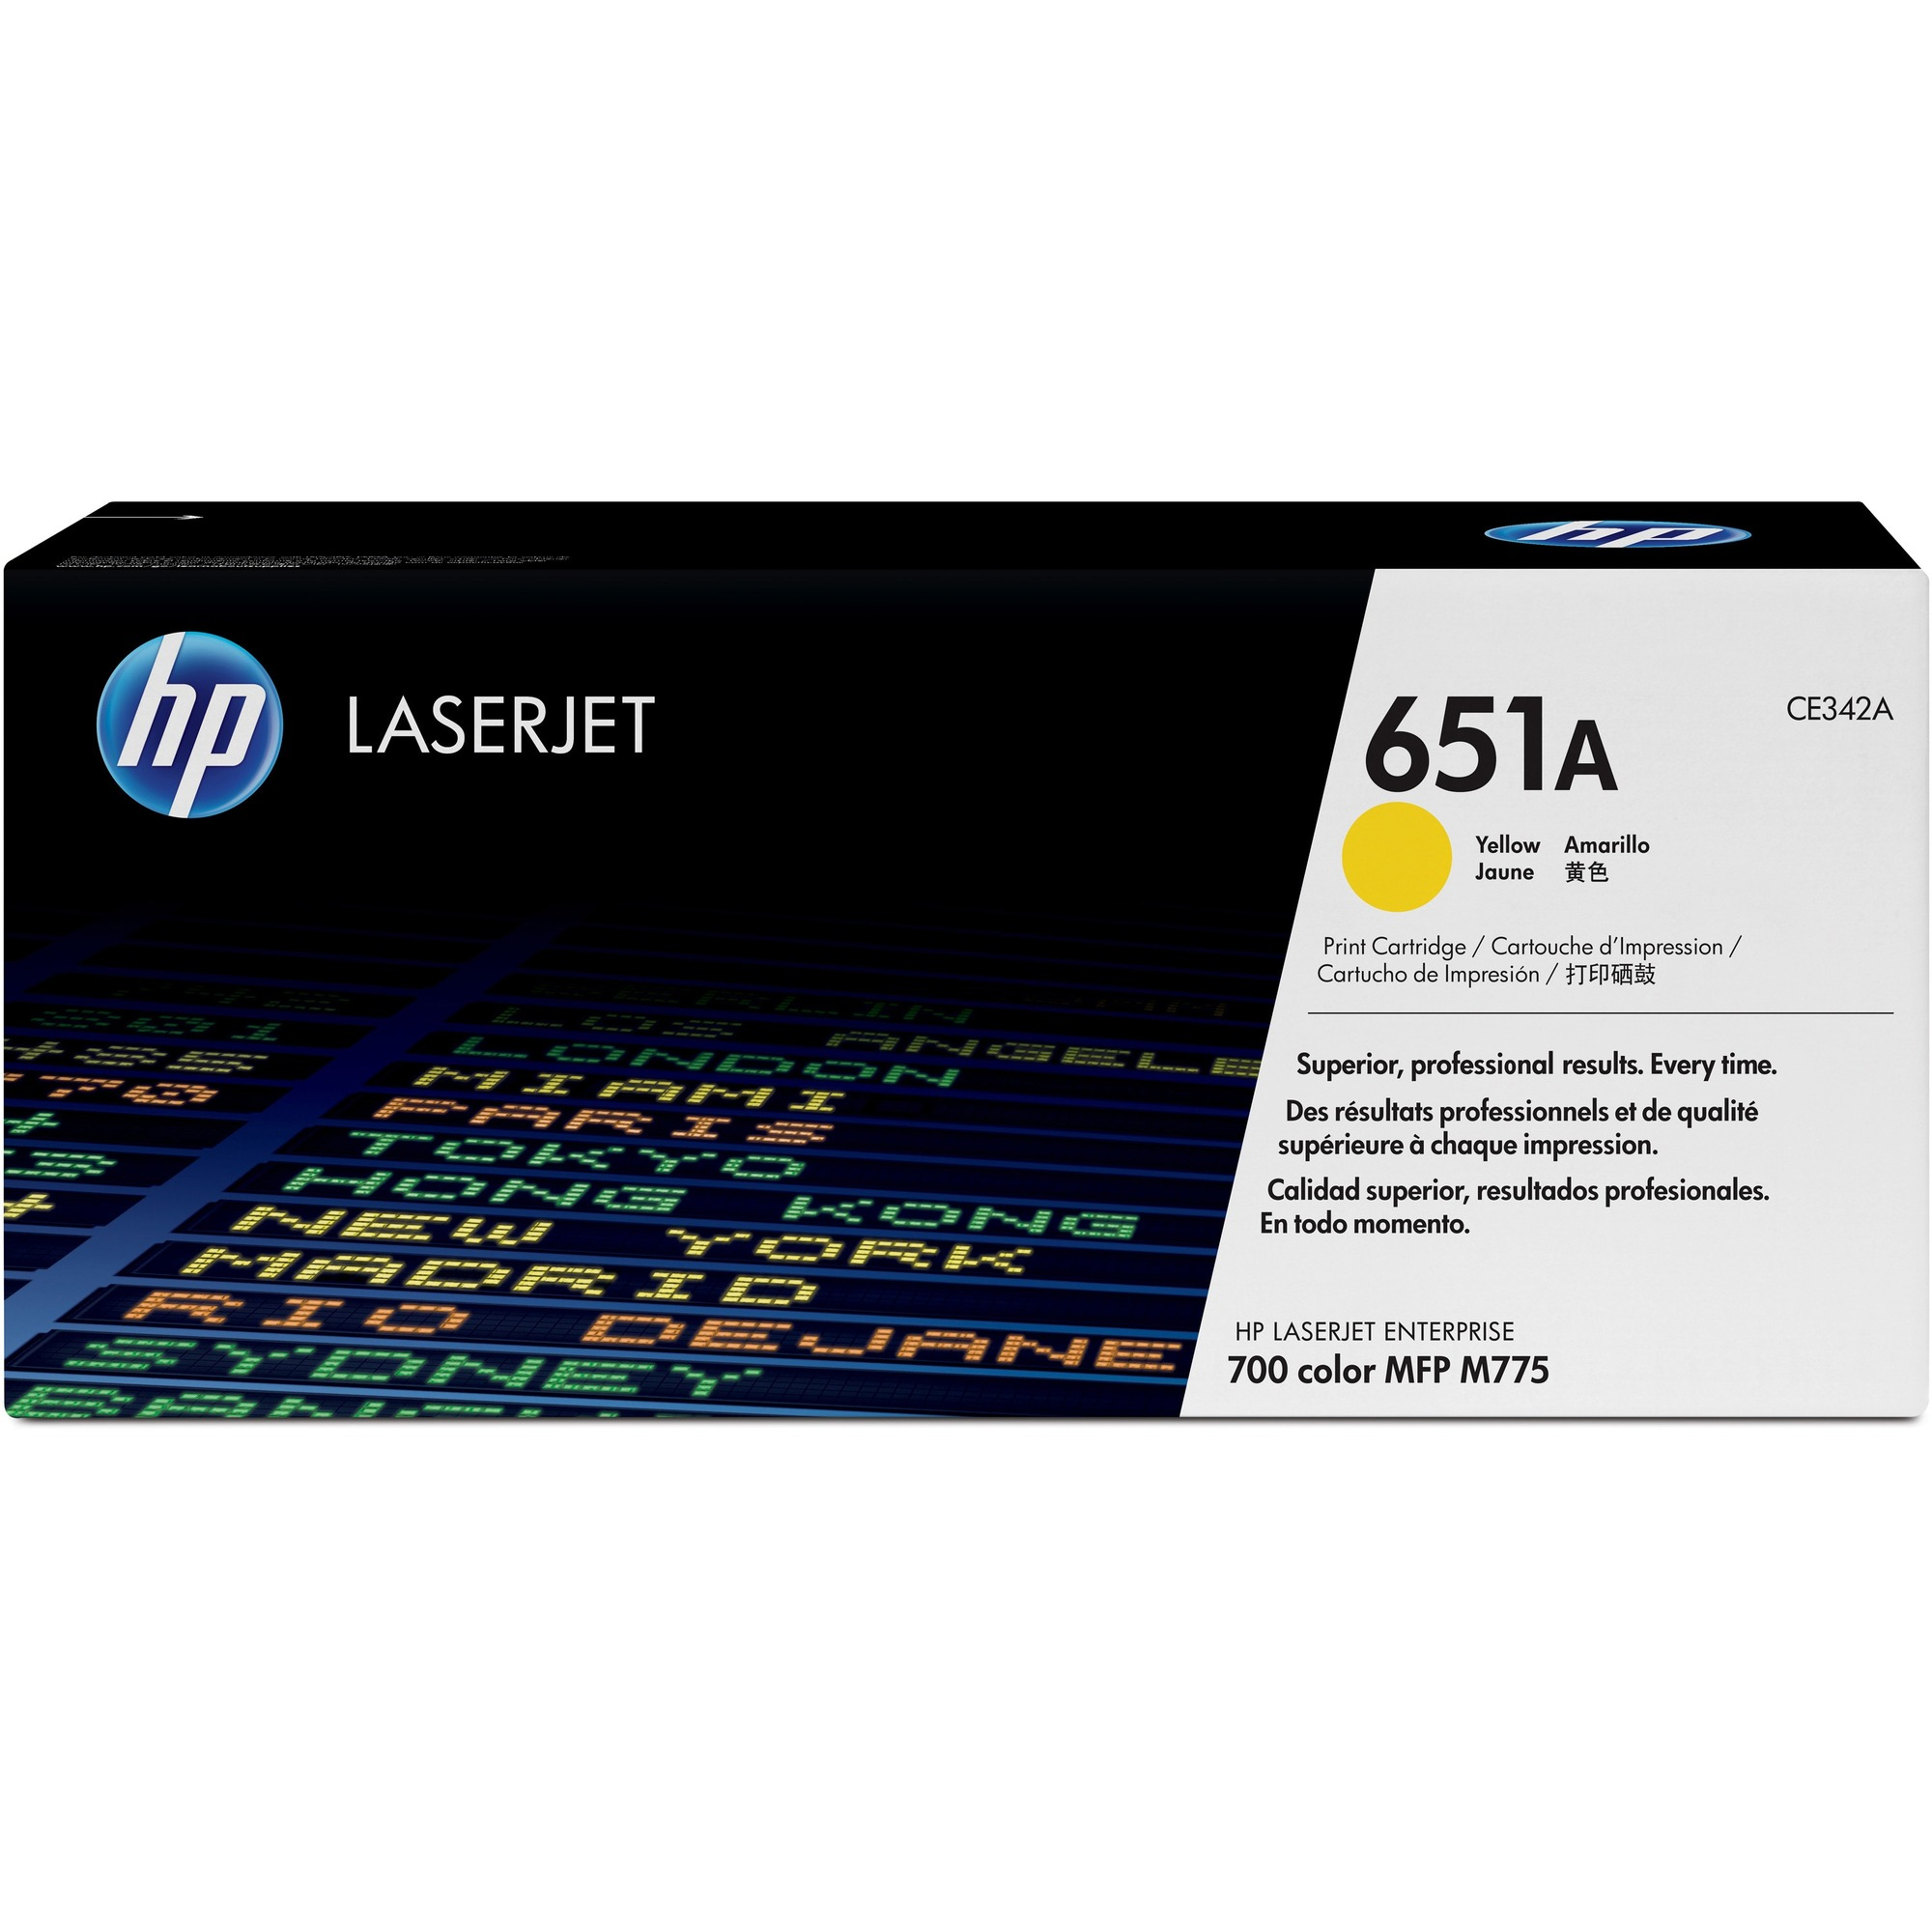 HP 651A Toner Cartridge - Yellow